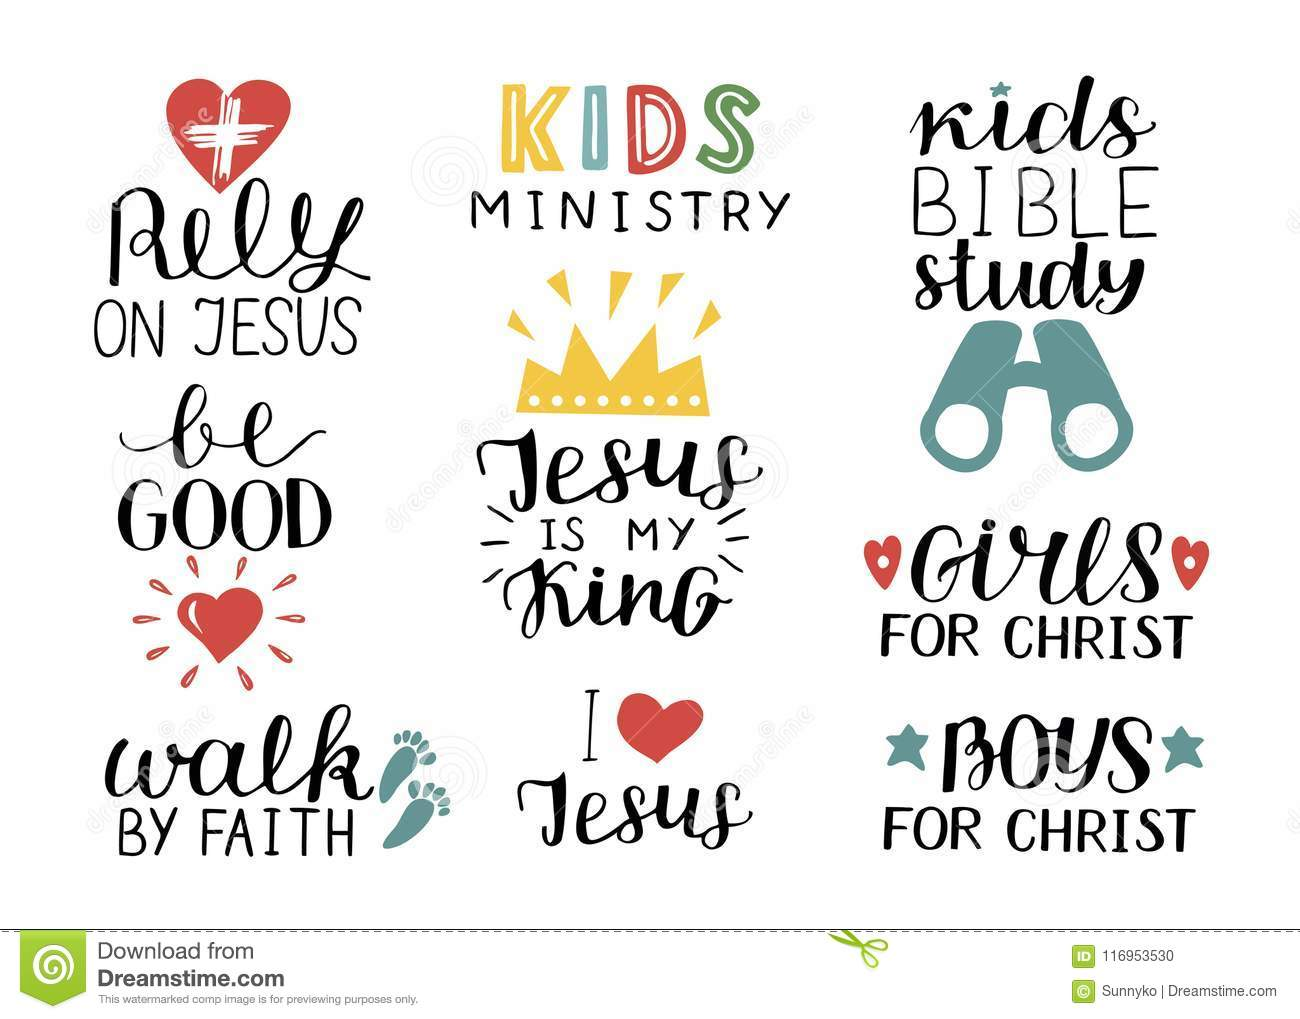 Set of 9 Hand lettering christian quotes Jesus is my king,Rely, Kids bible study, Be good, Girls, Boys, Walk by faith